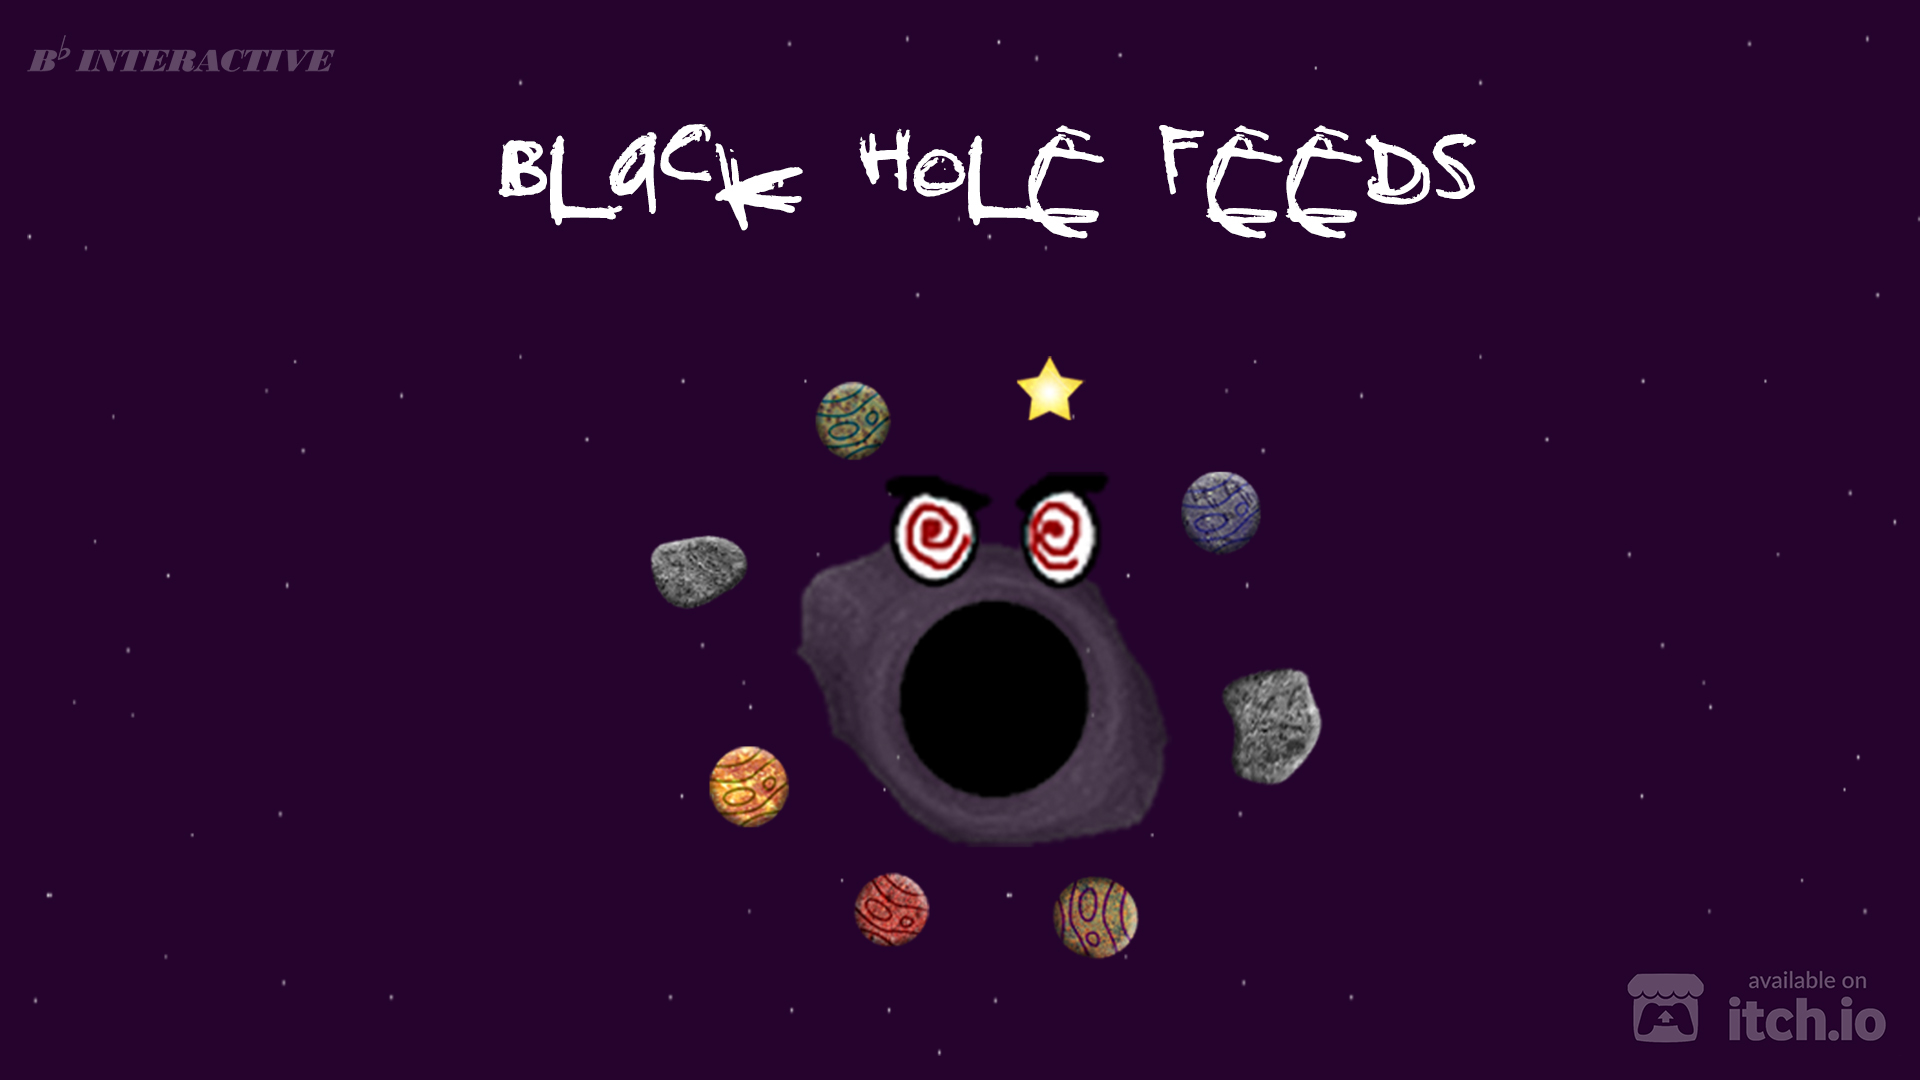 Black Hole Feeds